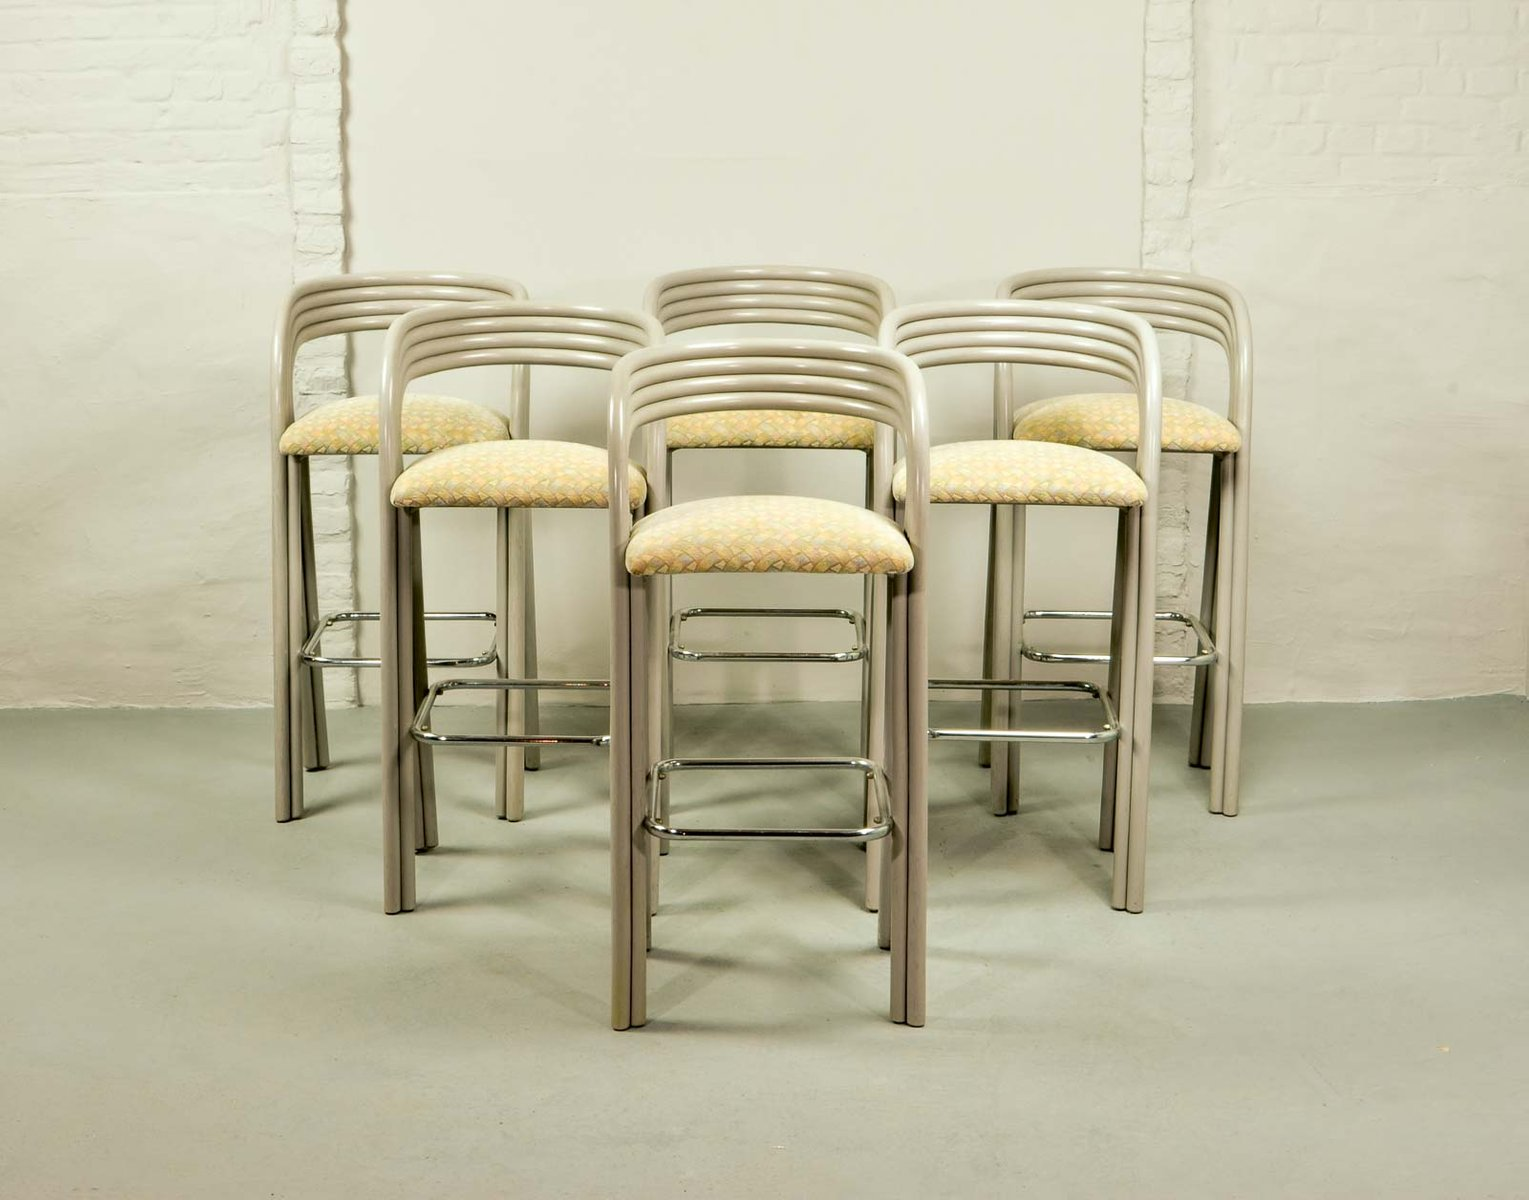 Dutch Barstools By Axel Enthoven For Roh 233 Holland 1970s